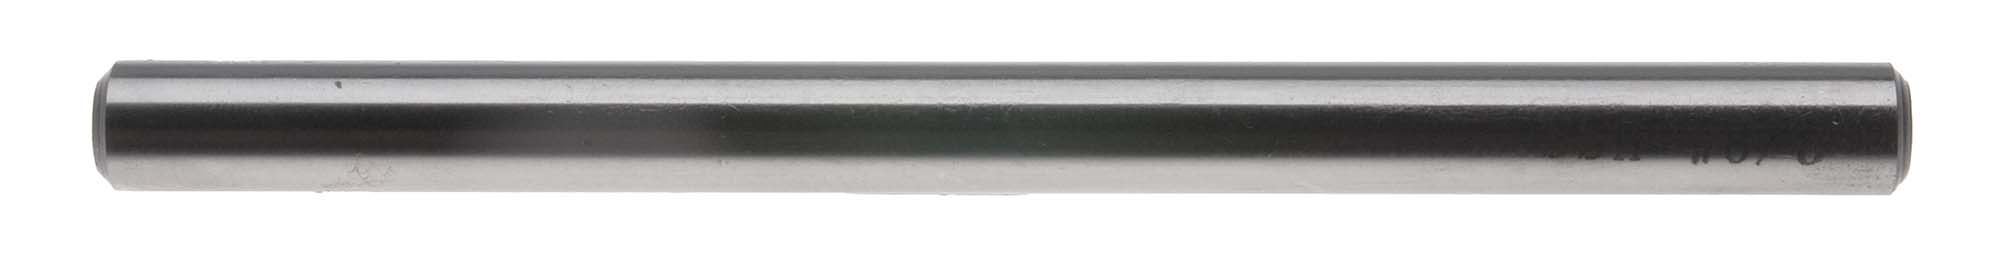 "#39 (.0995"") Jobber Length Drill Blank, High Speed Steel"